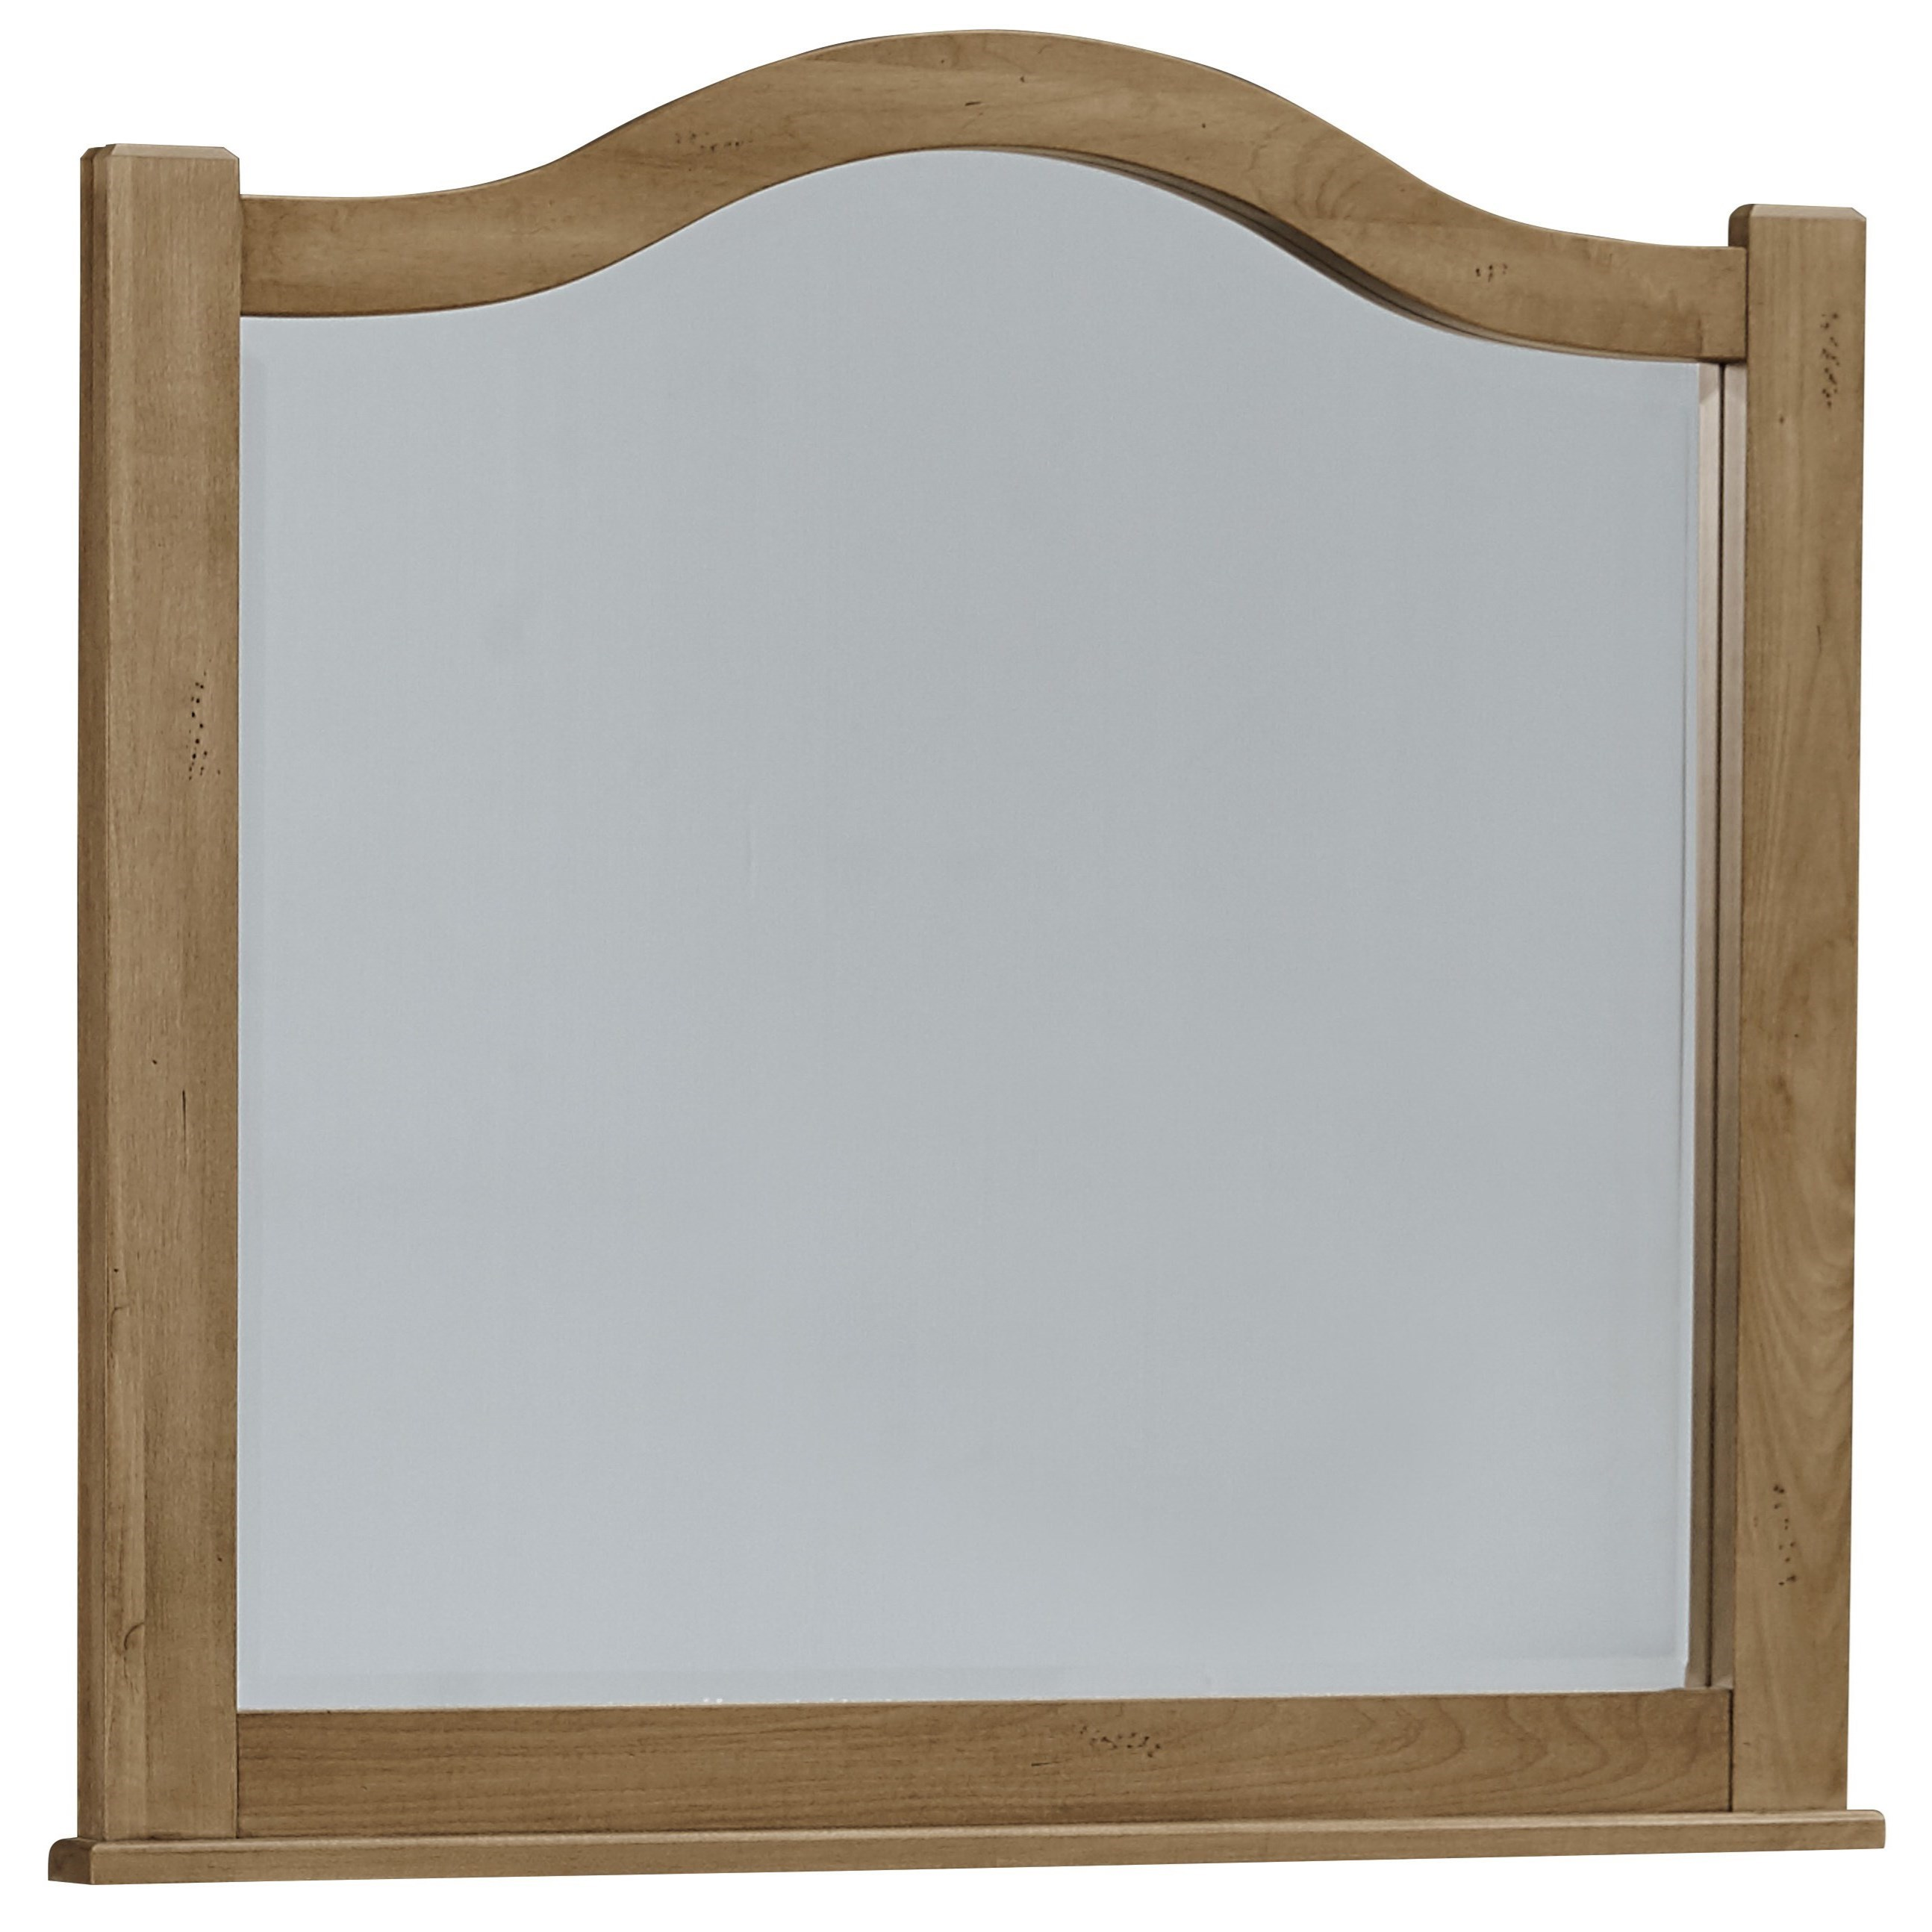 Vaughan bassett american maple arched mirror beveled for Beveled glass mirror